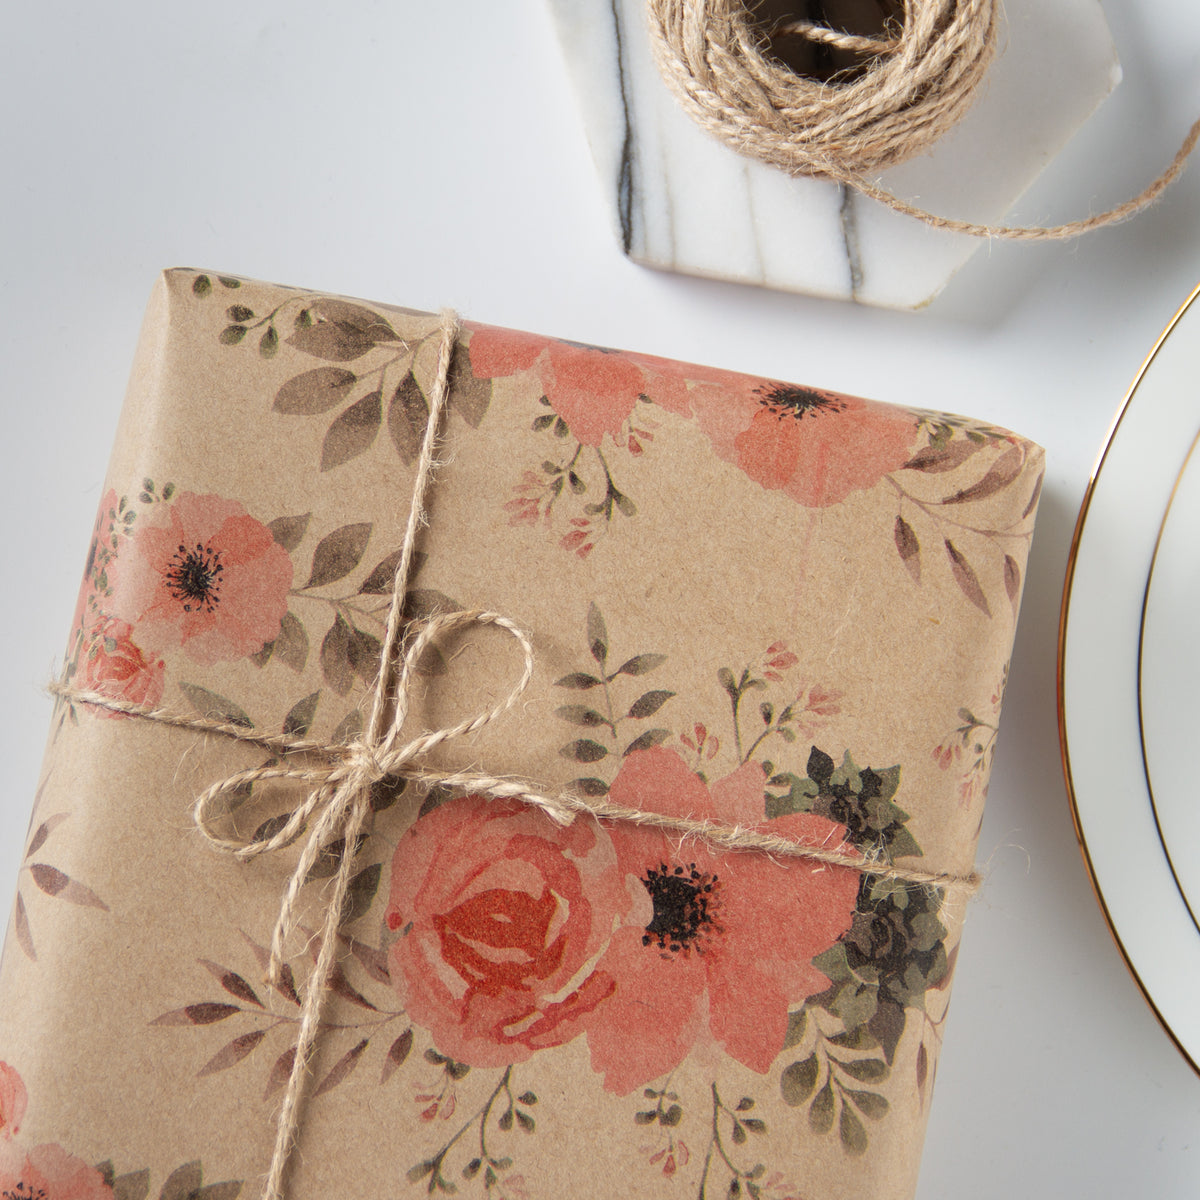 Wrapaholic-Floral-Patten-Kraft-Wrapping-paper-Roll-5